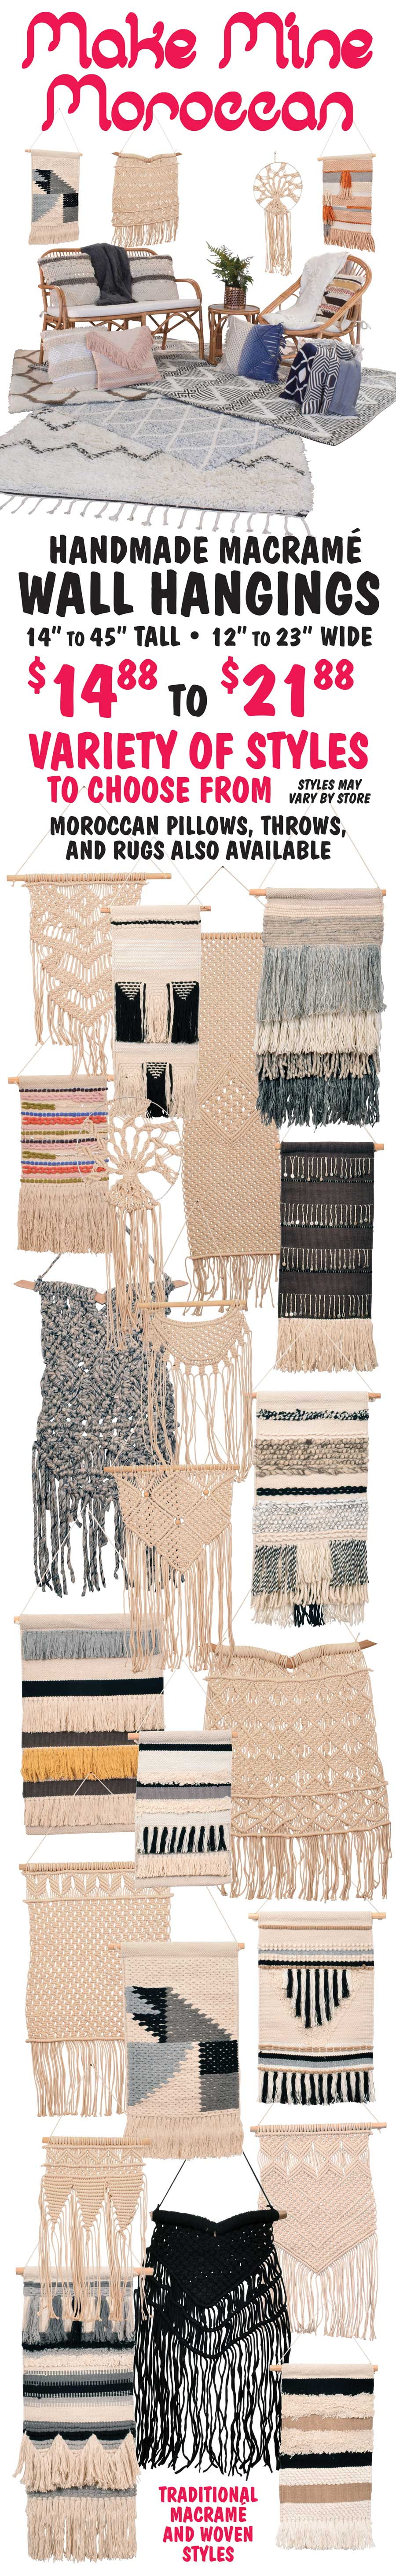 Moroccan Wall Hangings in traditional Macrame and Woven styles - $14.88 and $21.88